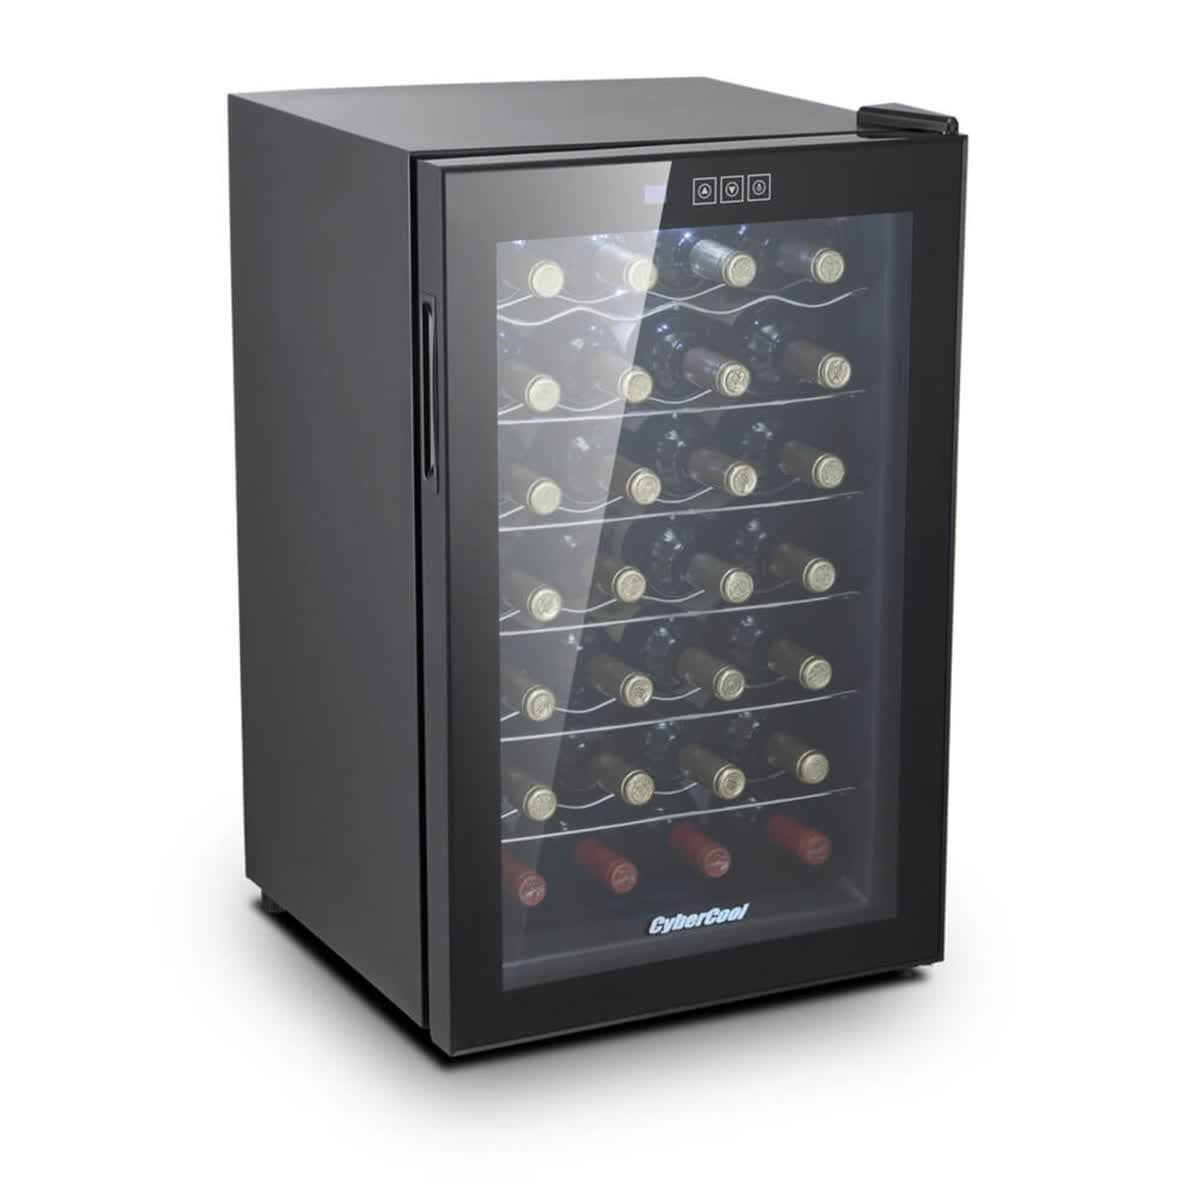 CyberCool 28 Bottle Thermoelectric Wine Cooler